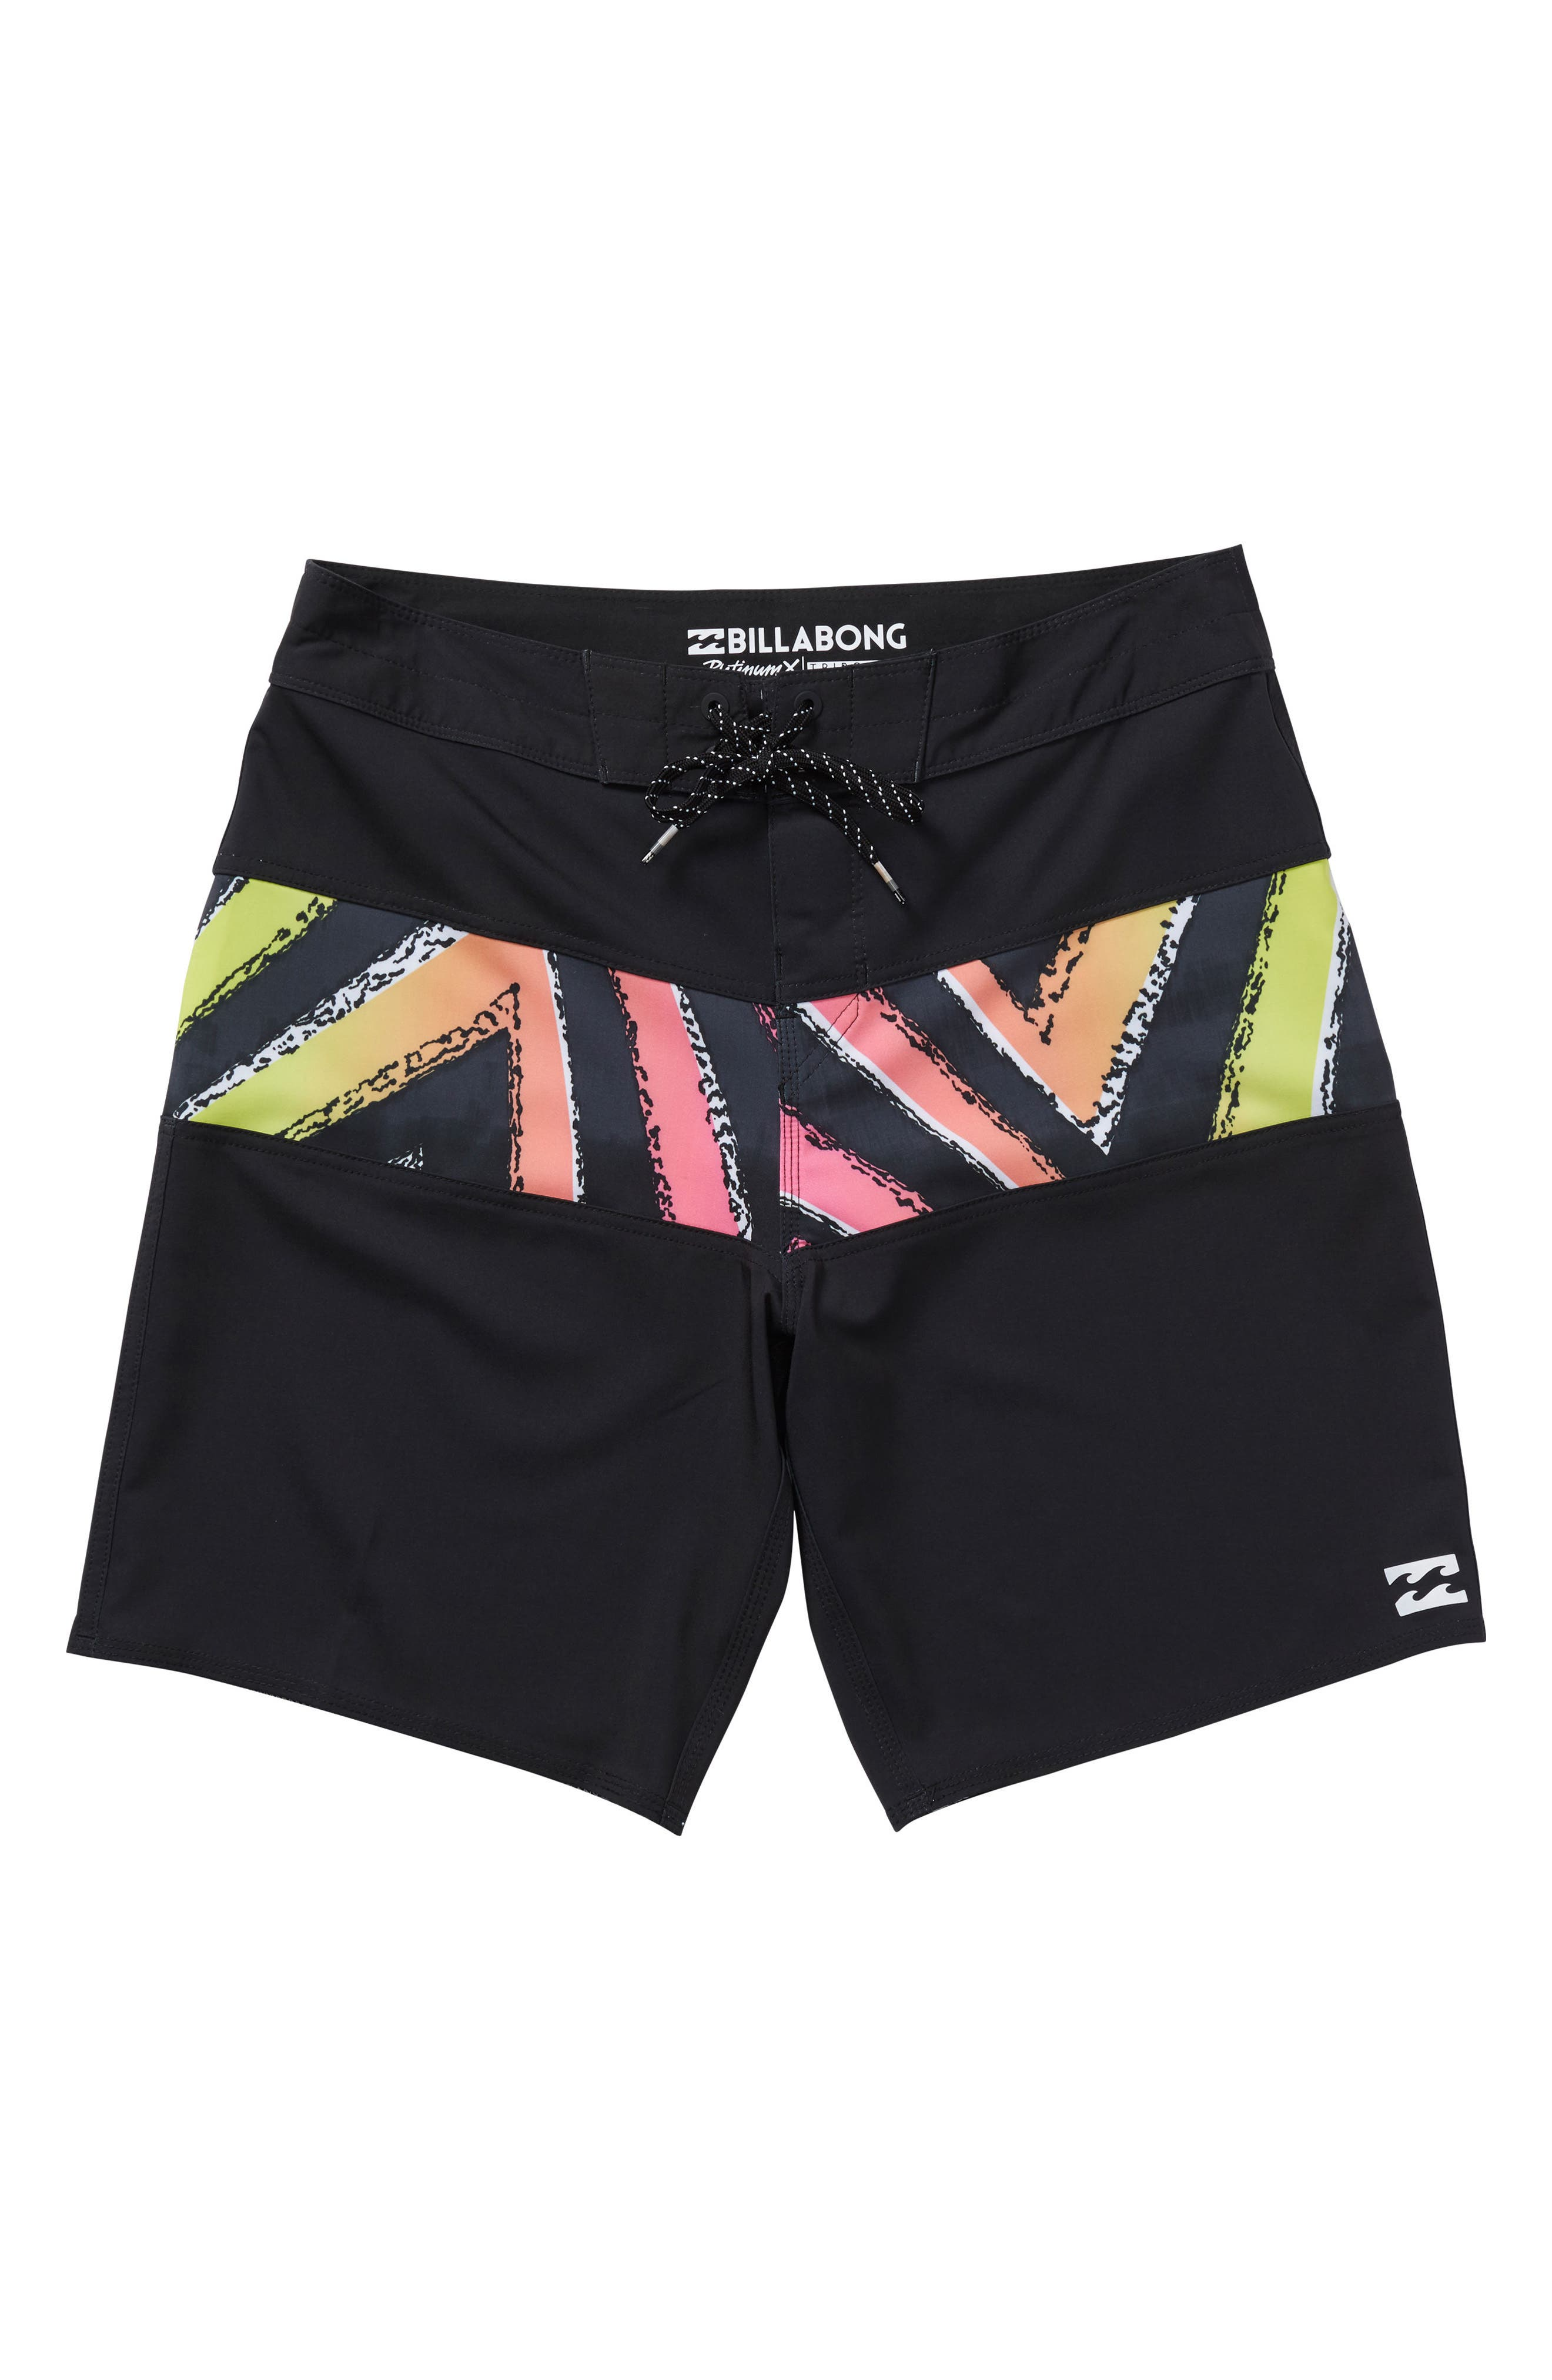 Tribong X Board Shorts,                         Main,                         color, 001